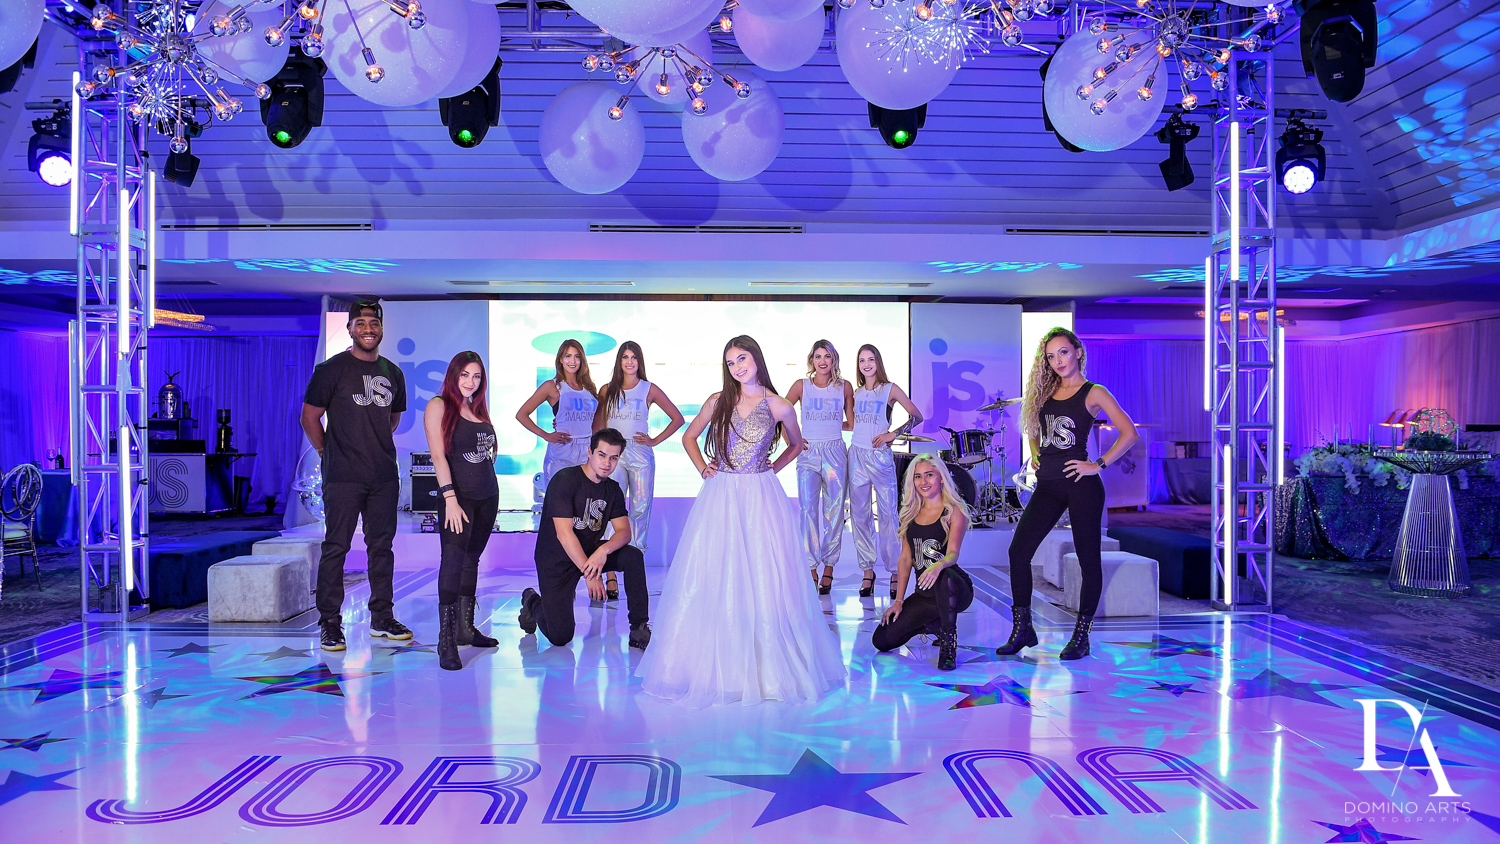 Motiv8 at Trendy Decor Bat Mitzvah at St Andrews Country Club by Domino Arts Photography